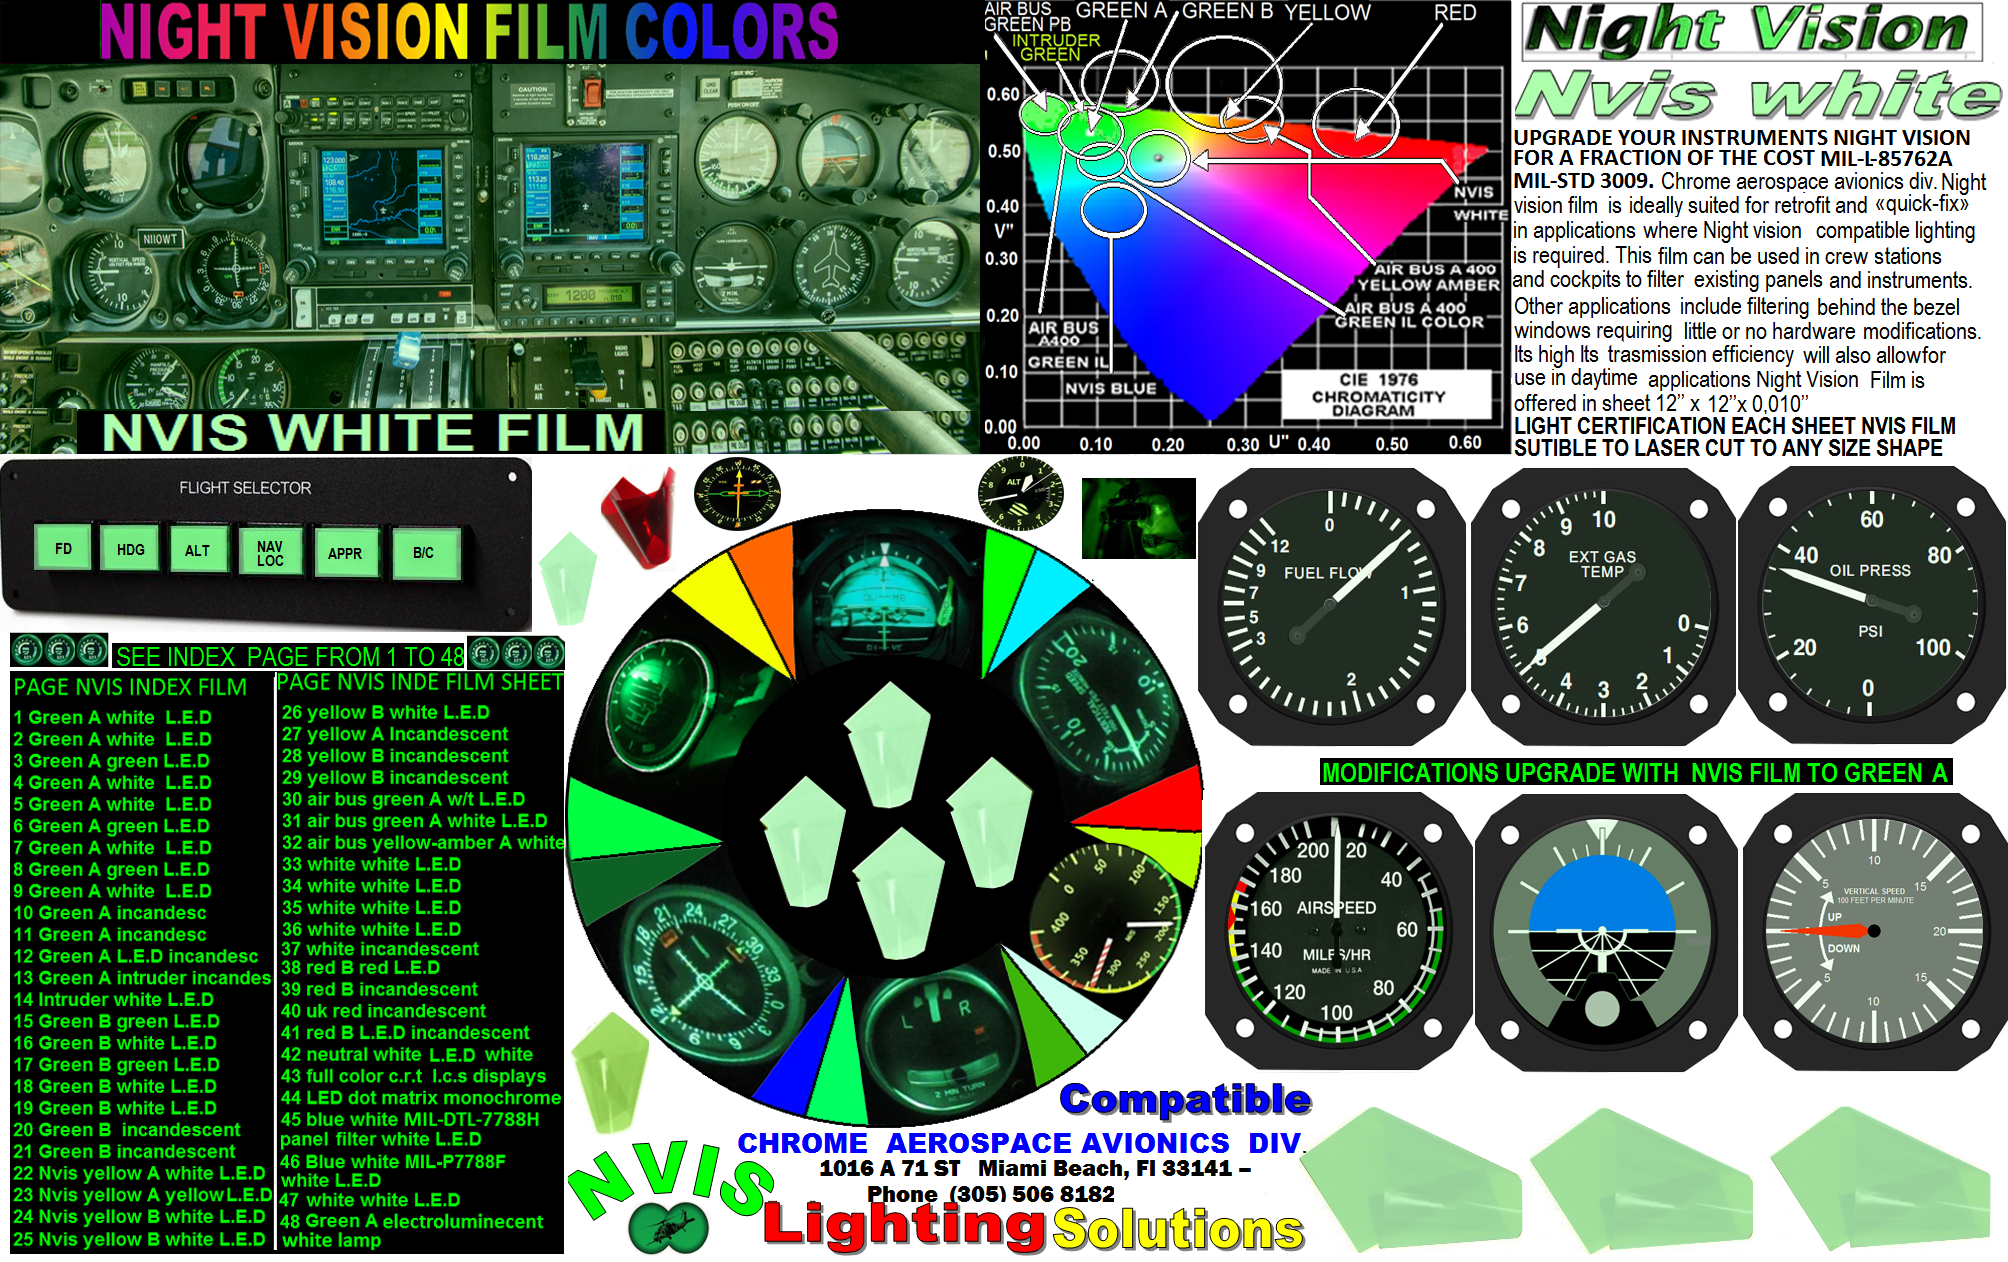 19 NVIS WHITE  FILM UPGRADE CONVERSION INSTRUMENTS   4-24-20.png